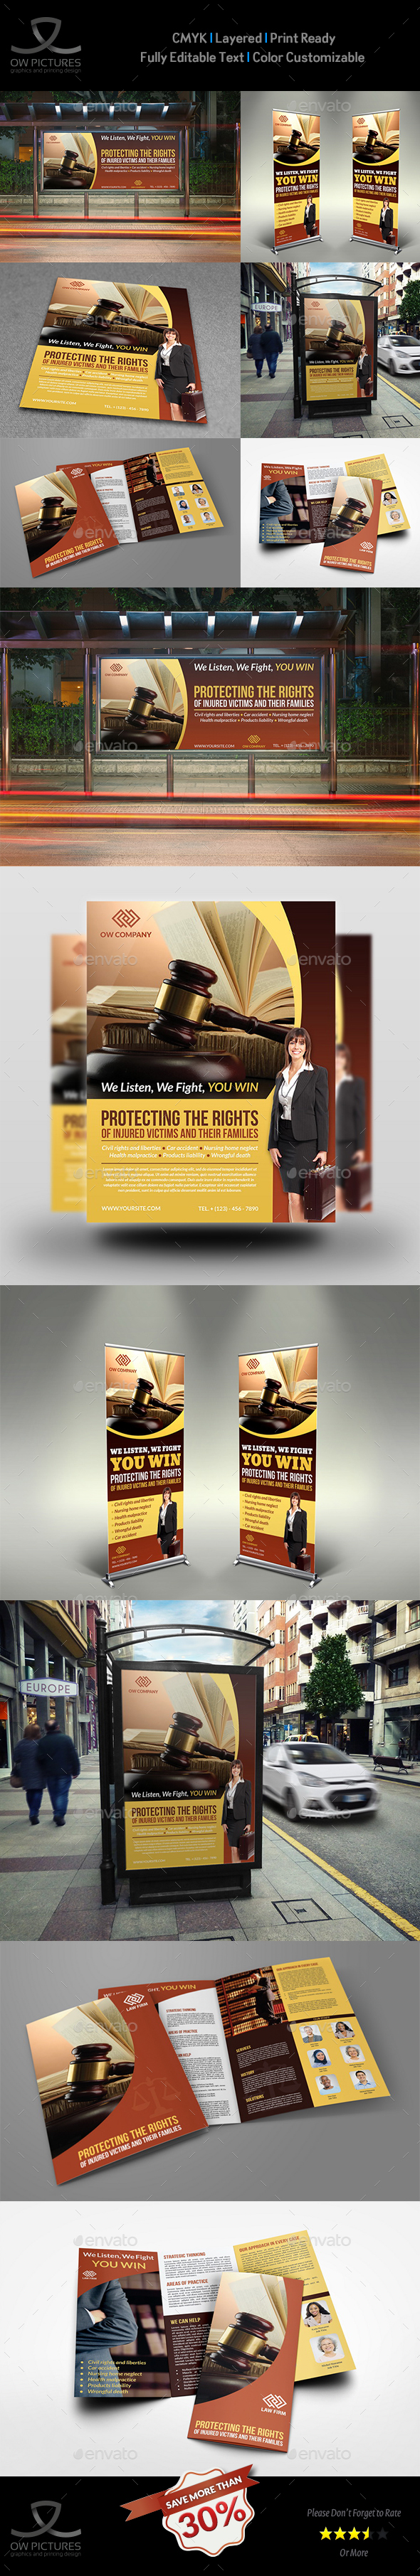 Law Firm Business Advertising Bundle - Signage Print Templates